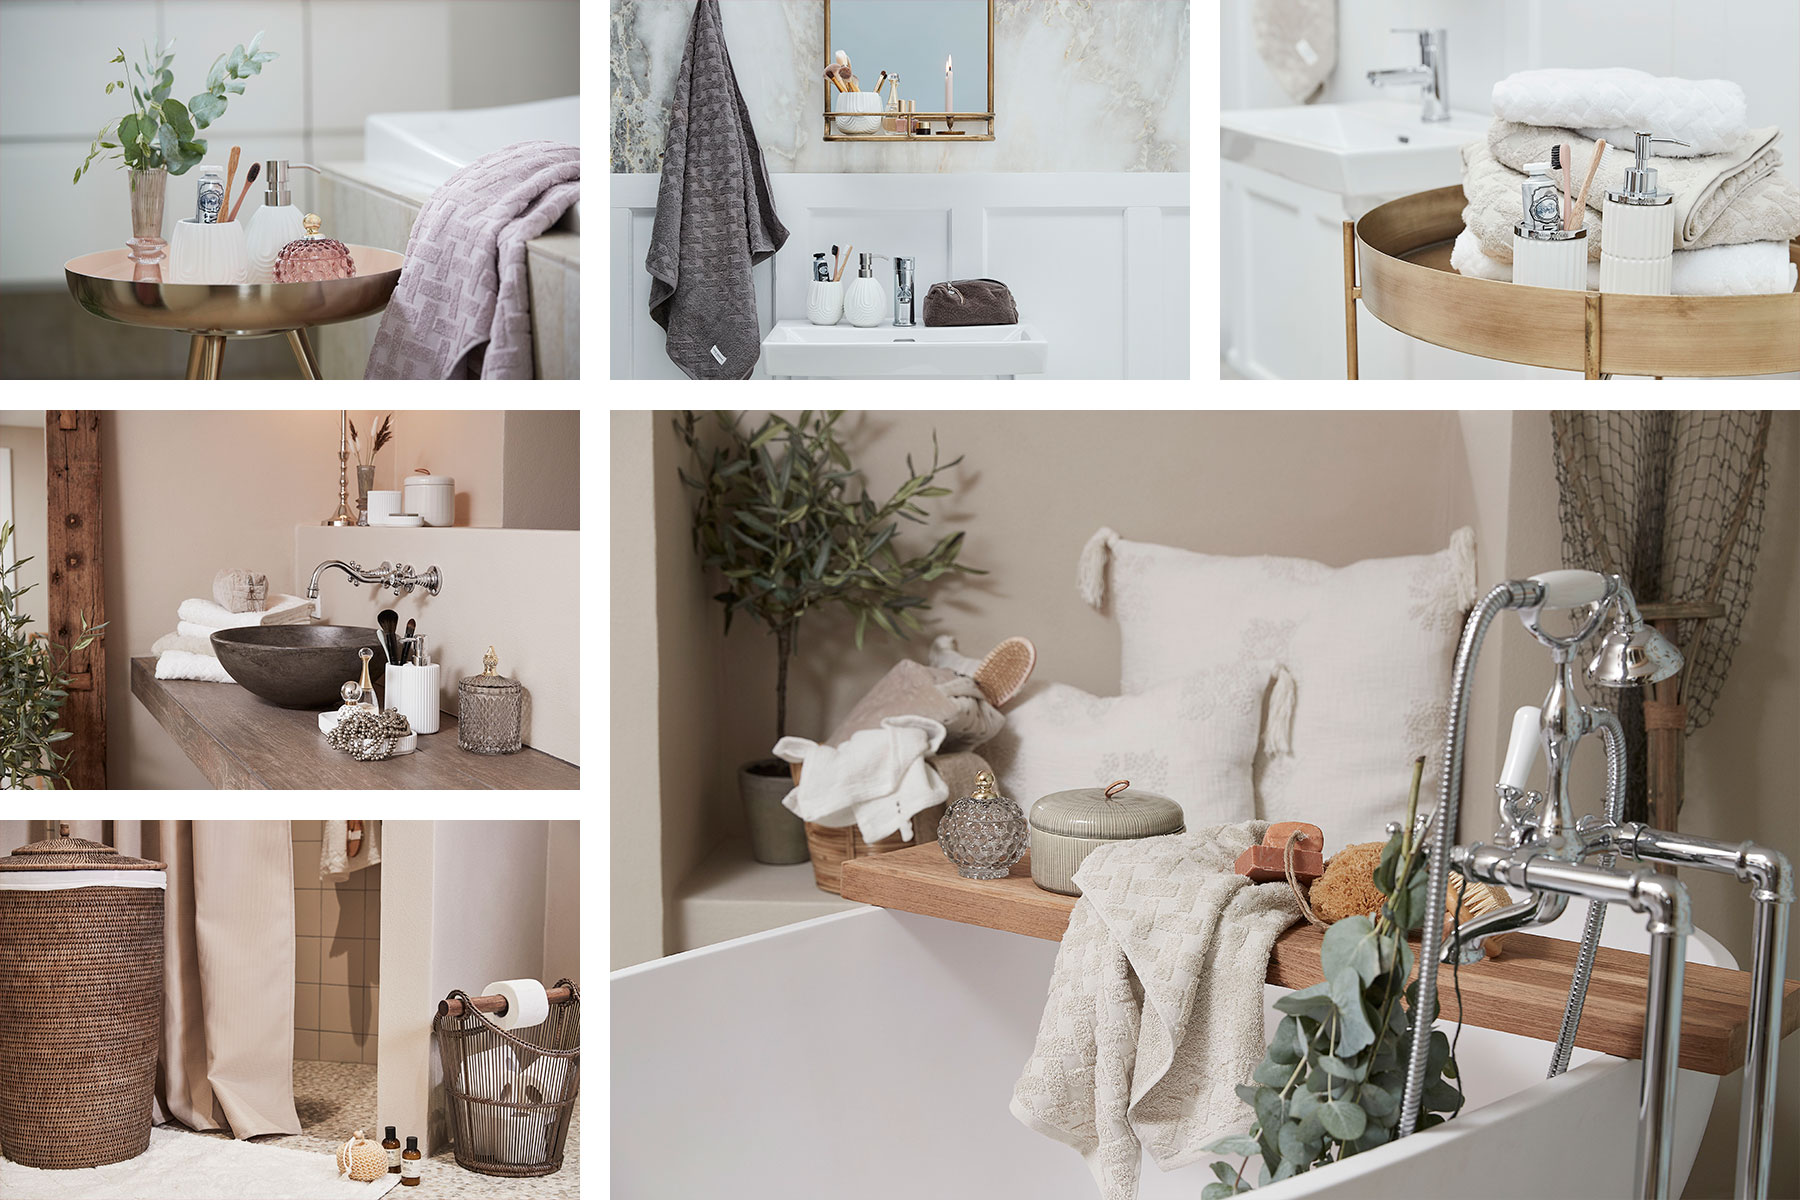 Lene Bjerre wholesale bath accessories